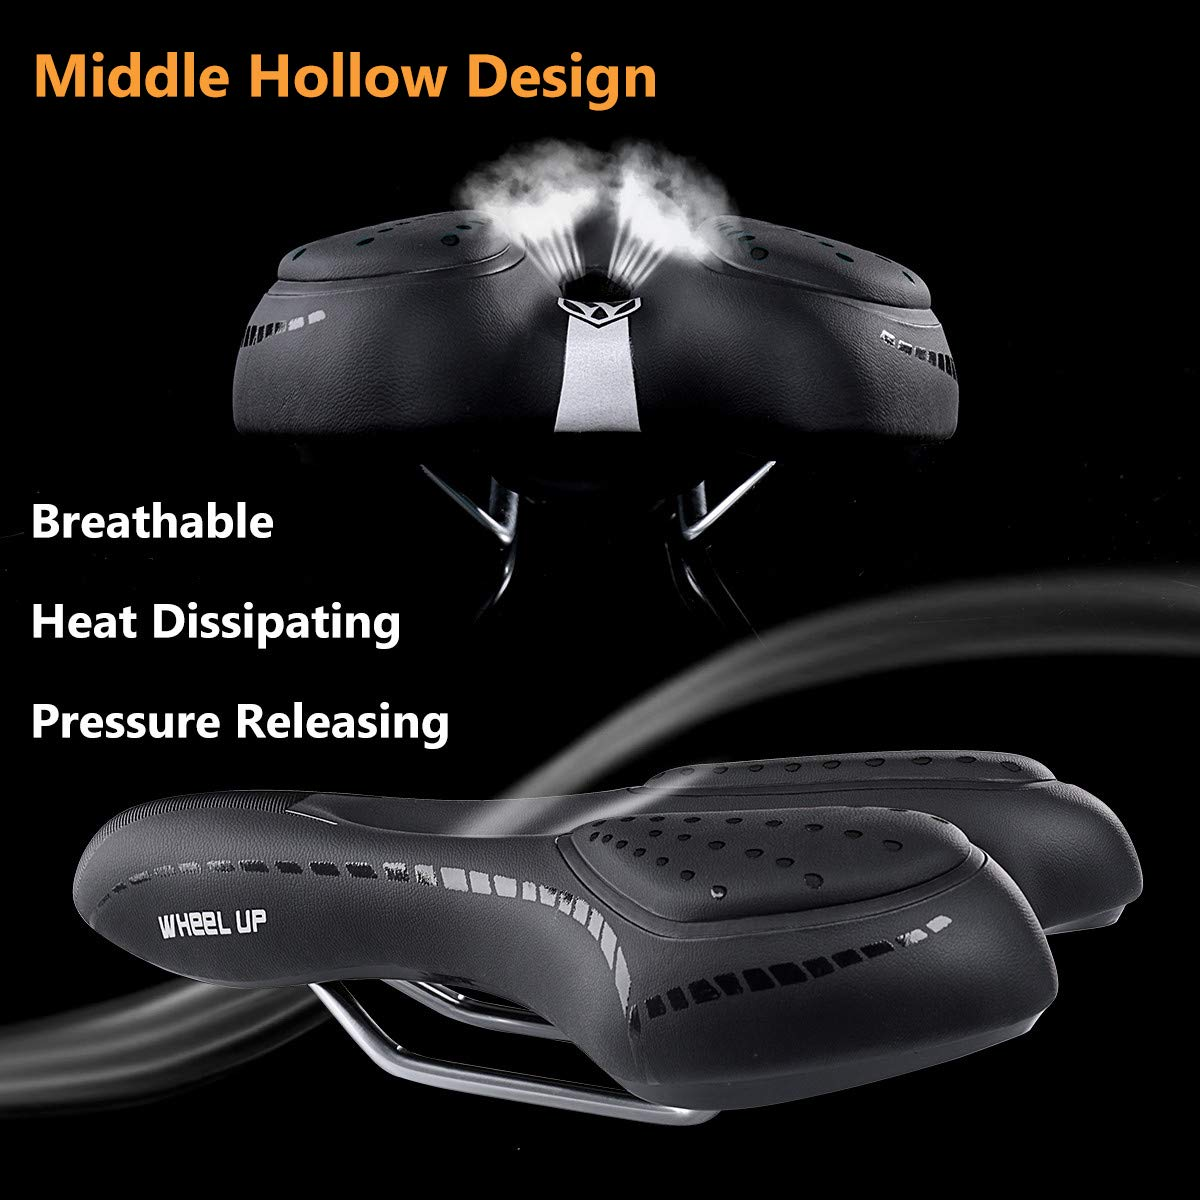 WHEEL UP Breathable Leather Padded Gel Cushion Bike Seat for Men Comfort Soft Memory Foam Women Narrow Bicycle Saddle Replacement for Outdoor Bikes